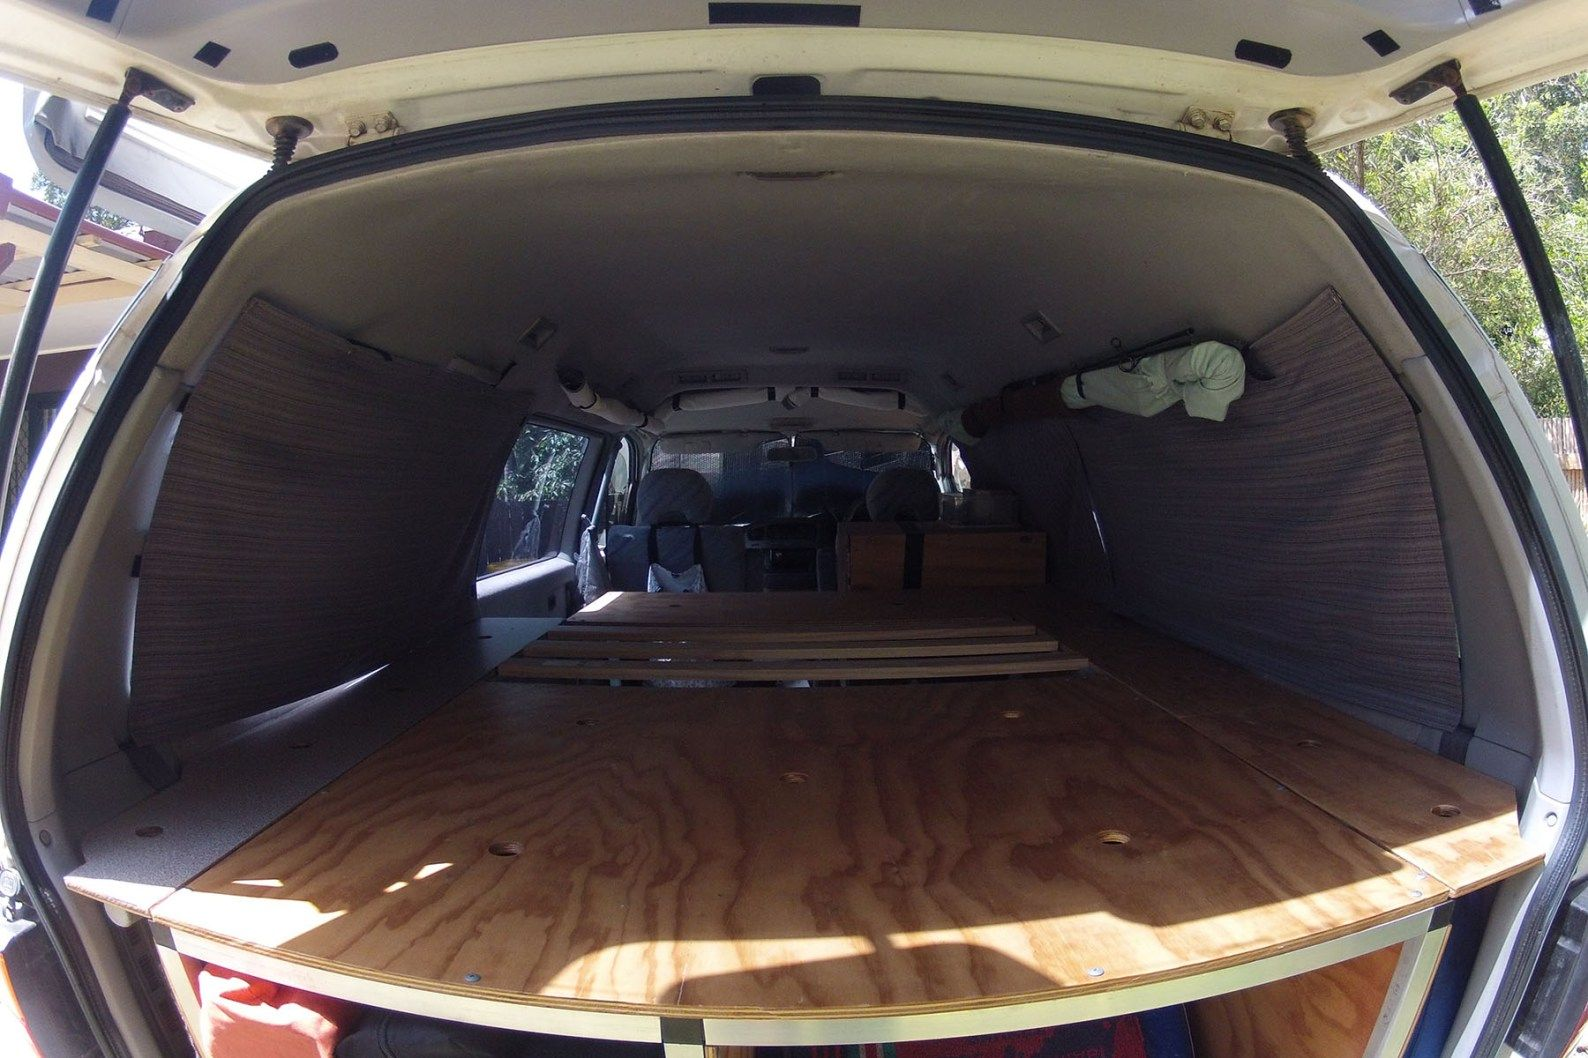 DIY blockout curtains for our Delica campervan